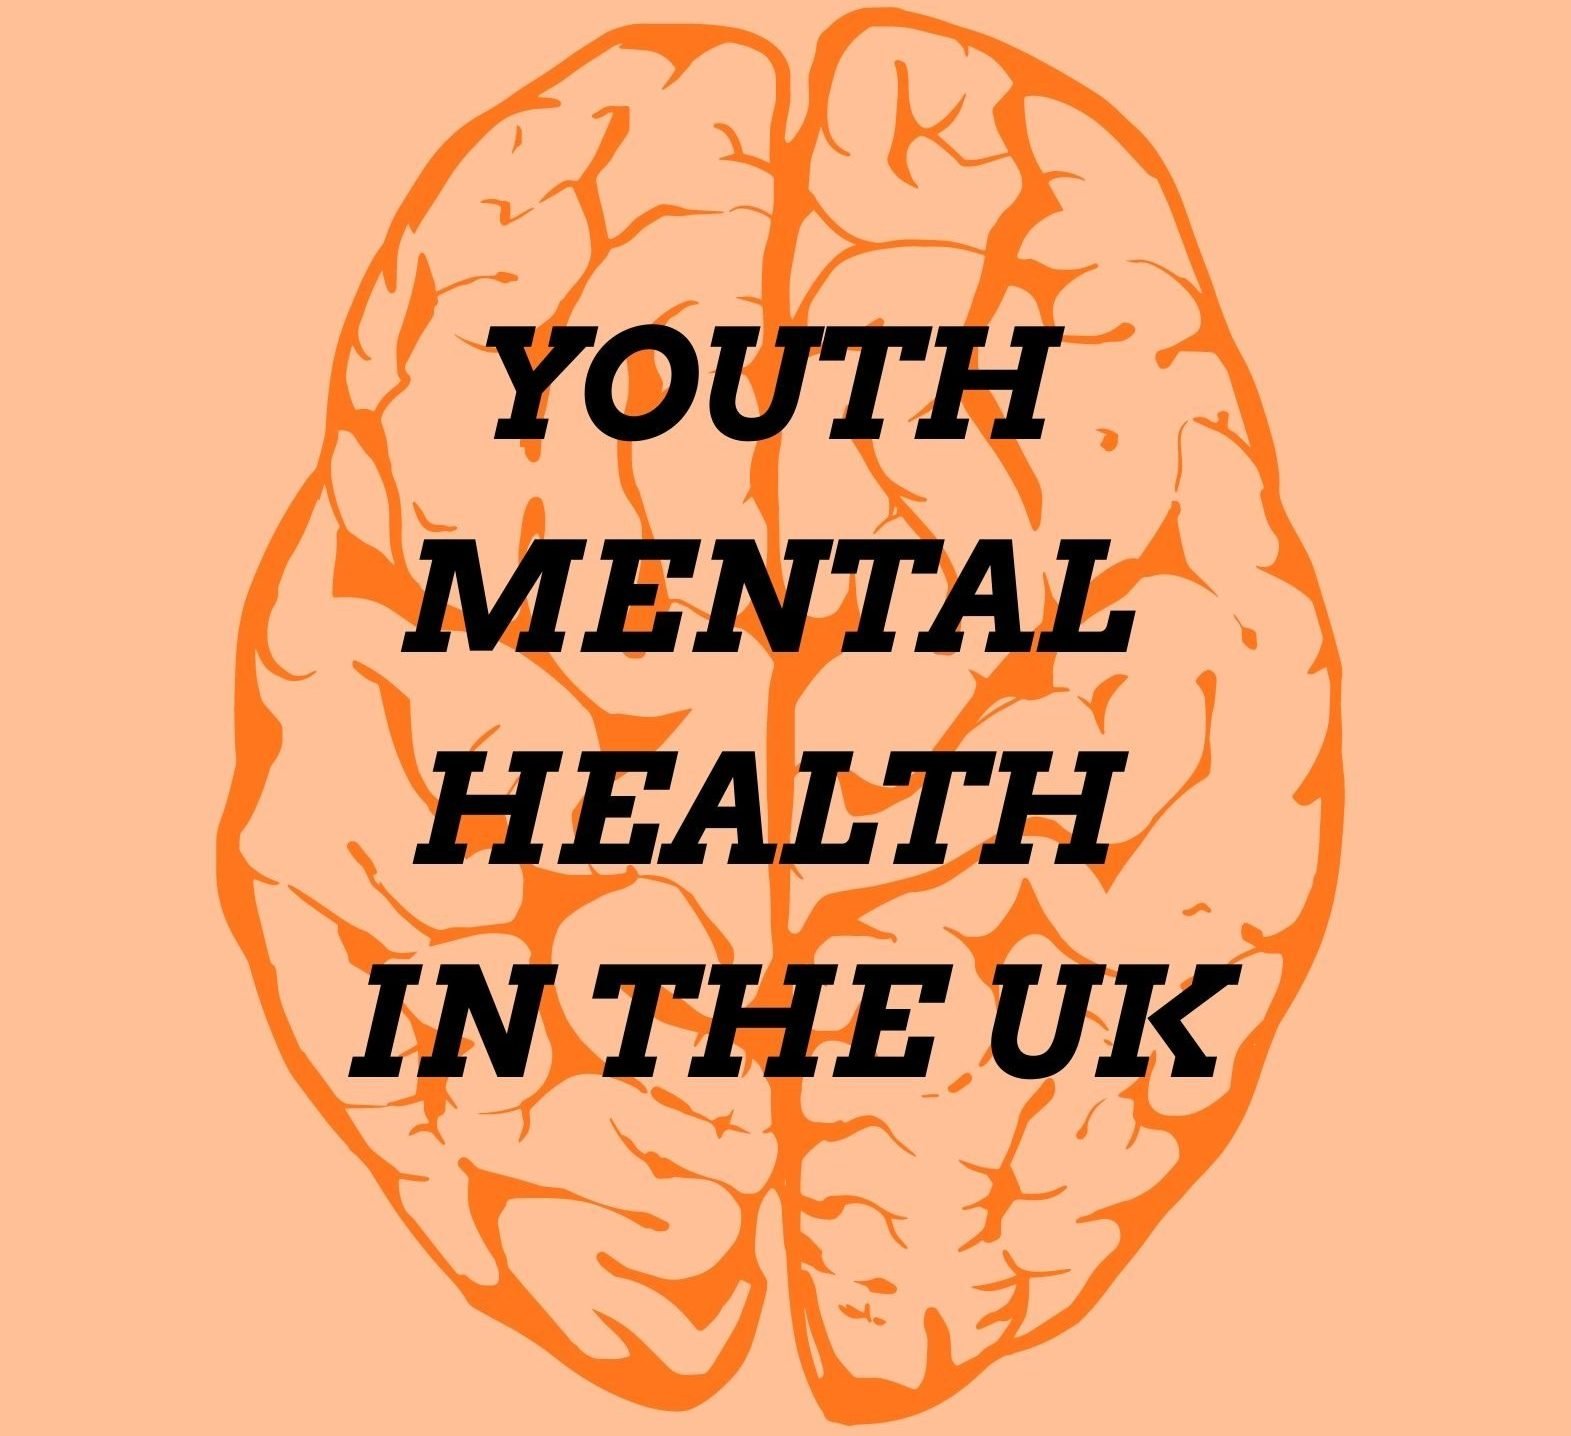 Youth Mental Health in the UK